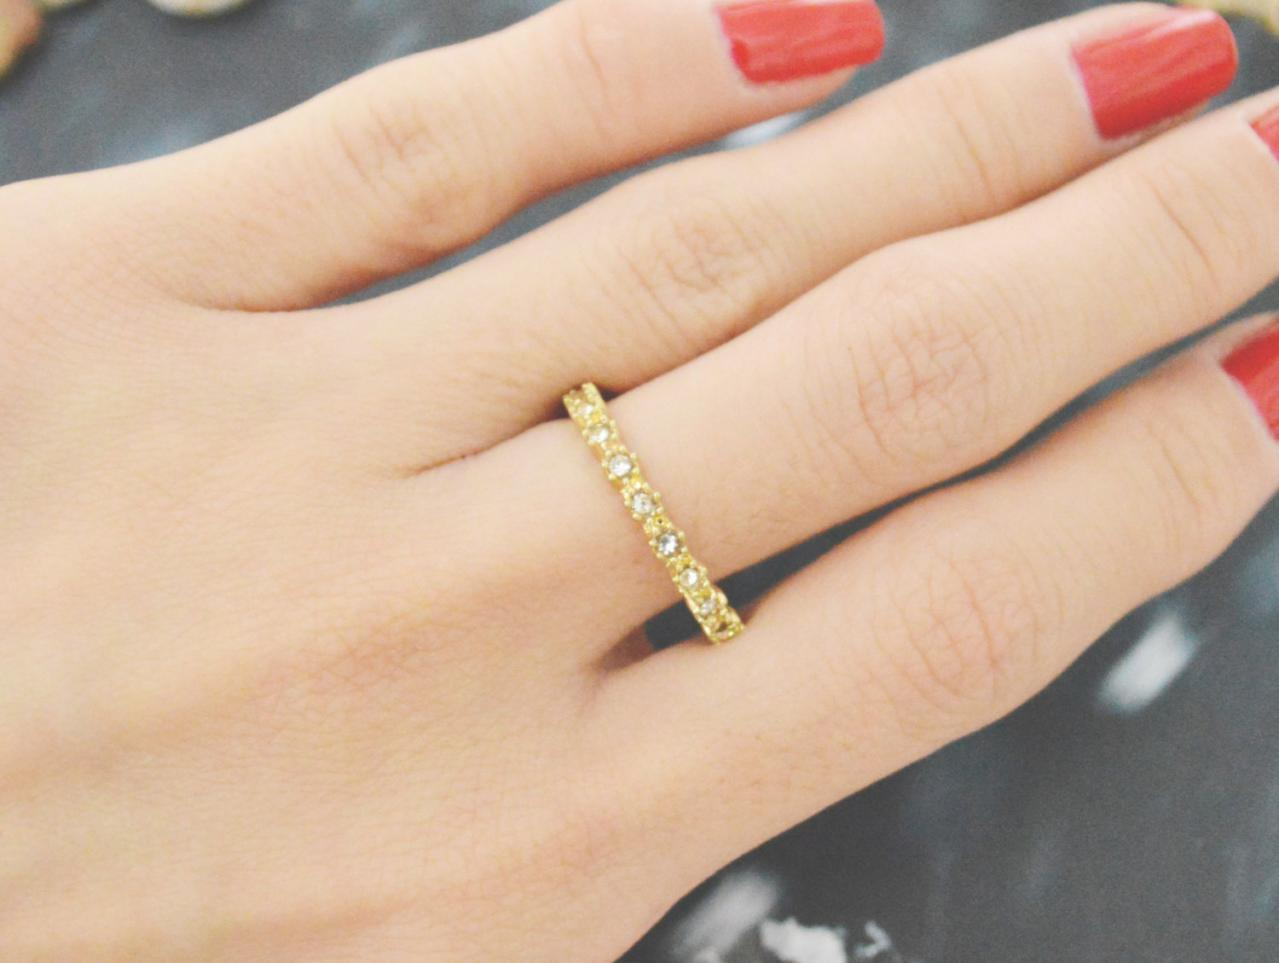 E-054 Round ring, Cubic ring, Simple ring, Modern ring, Gold plated ring/Everyday/Gift/